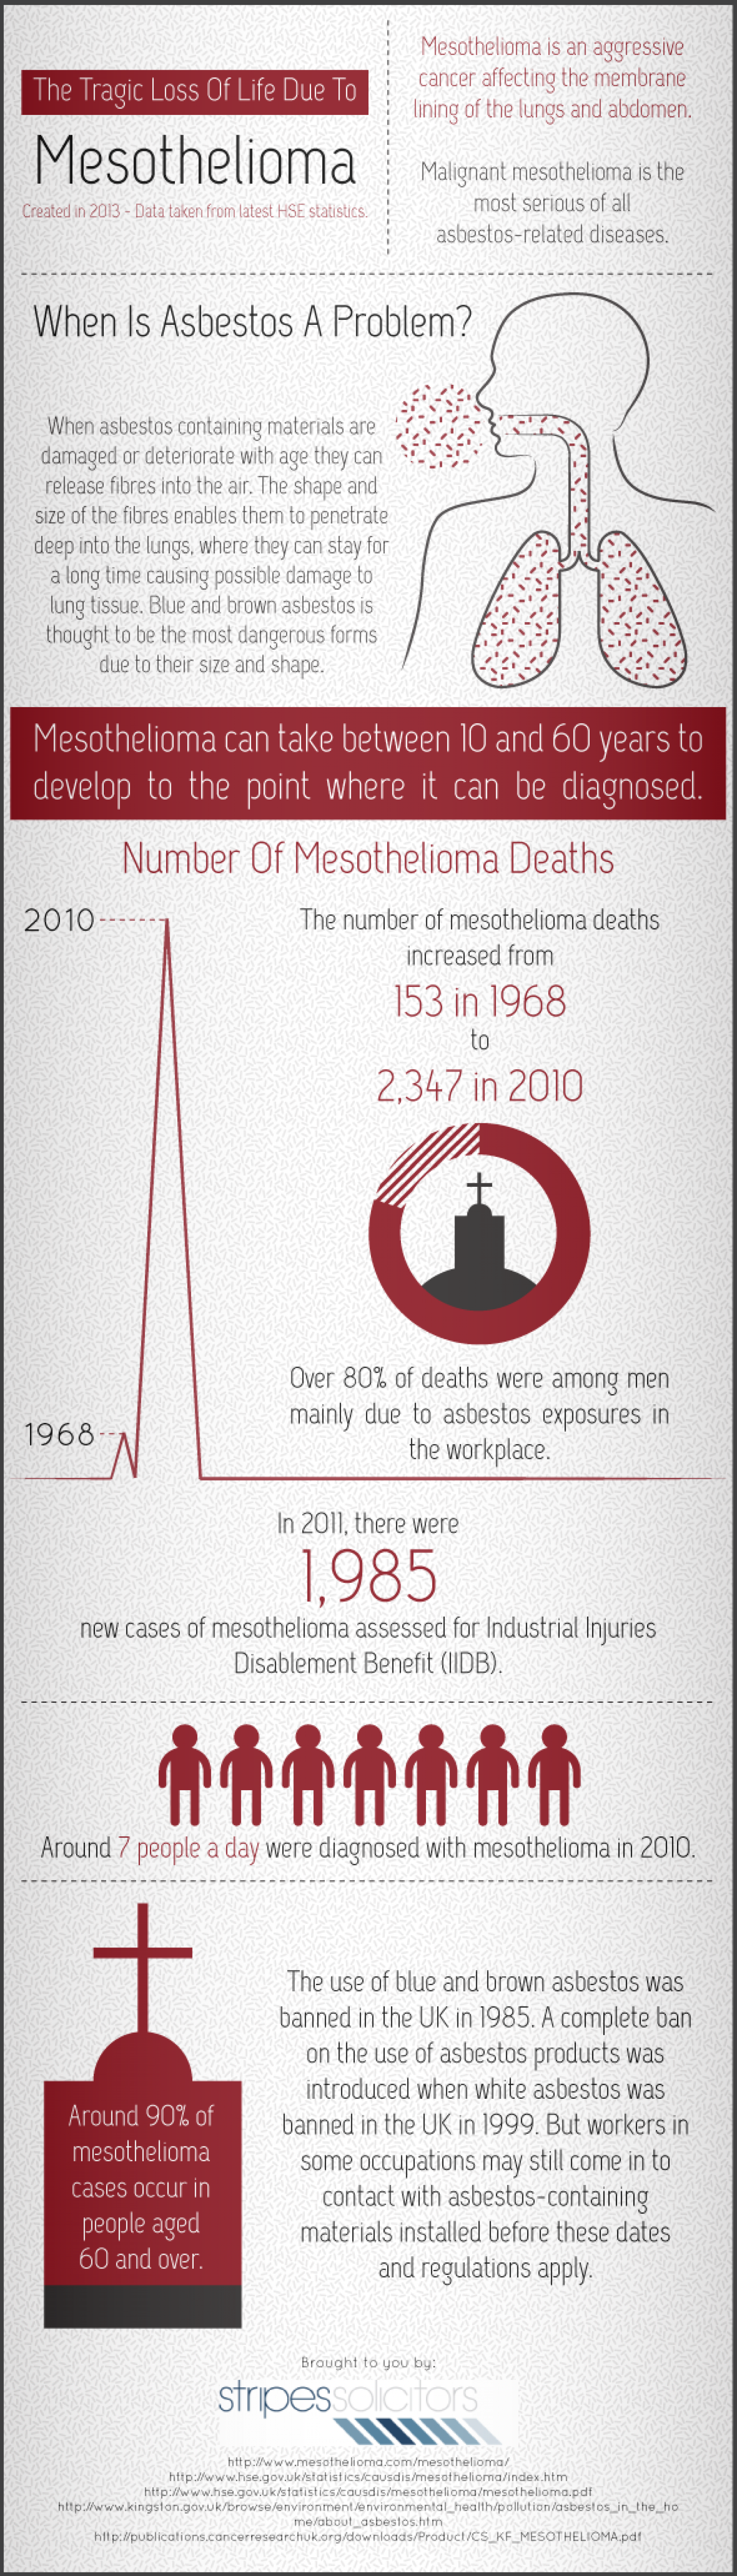 The Tragic Loss Of Life Due To Mesothelioma Infographic